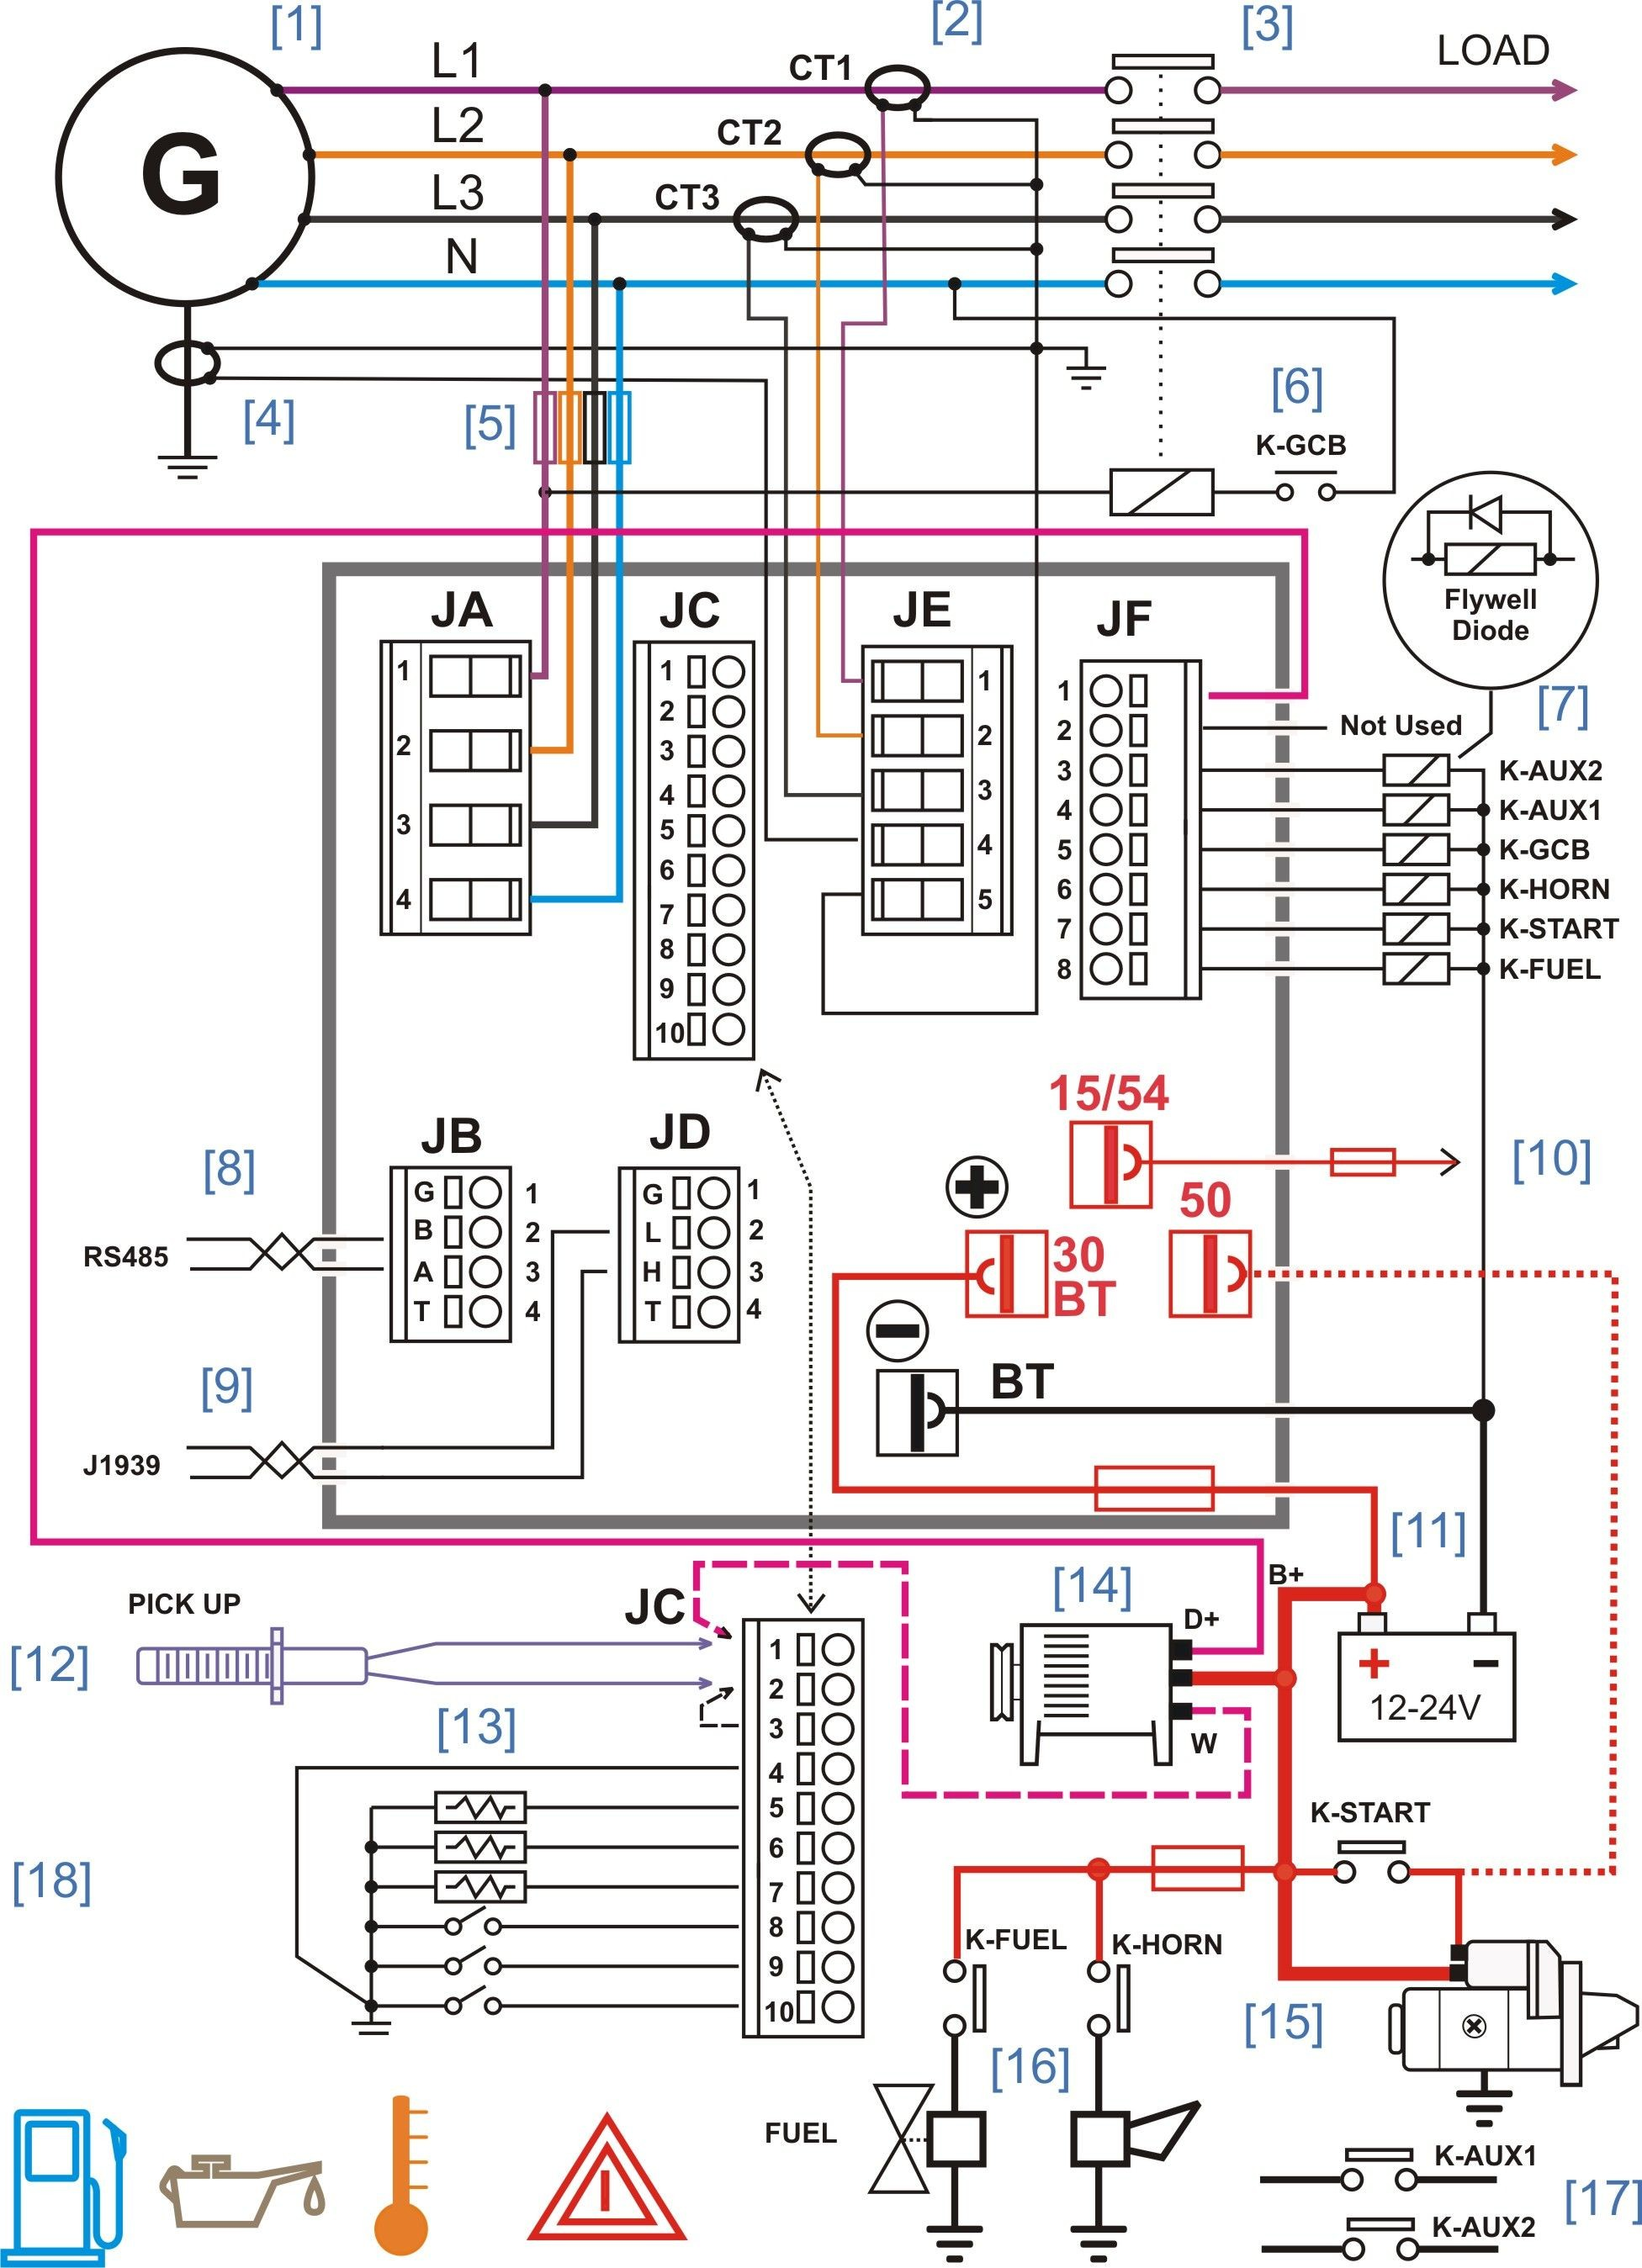 Home Electrical Wiring Diagrams Outdoor Diesel Generator Control Panel Diagram Of